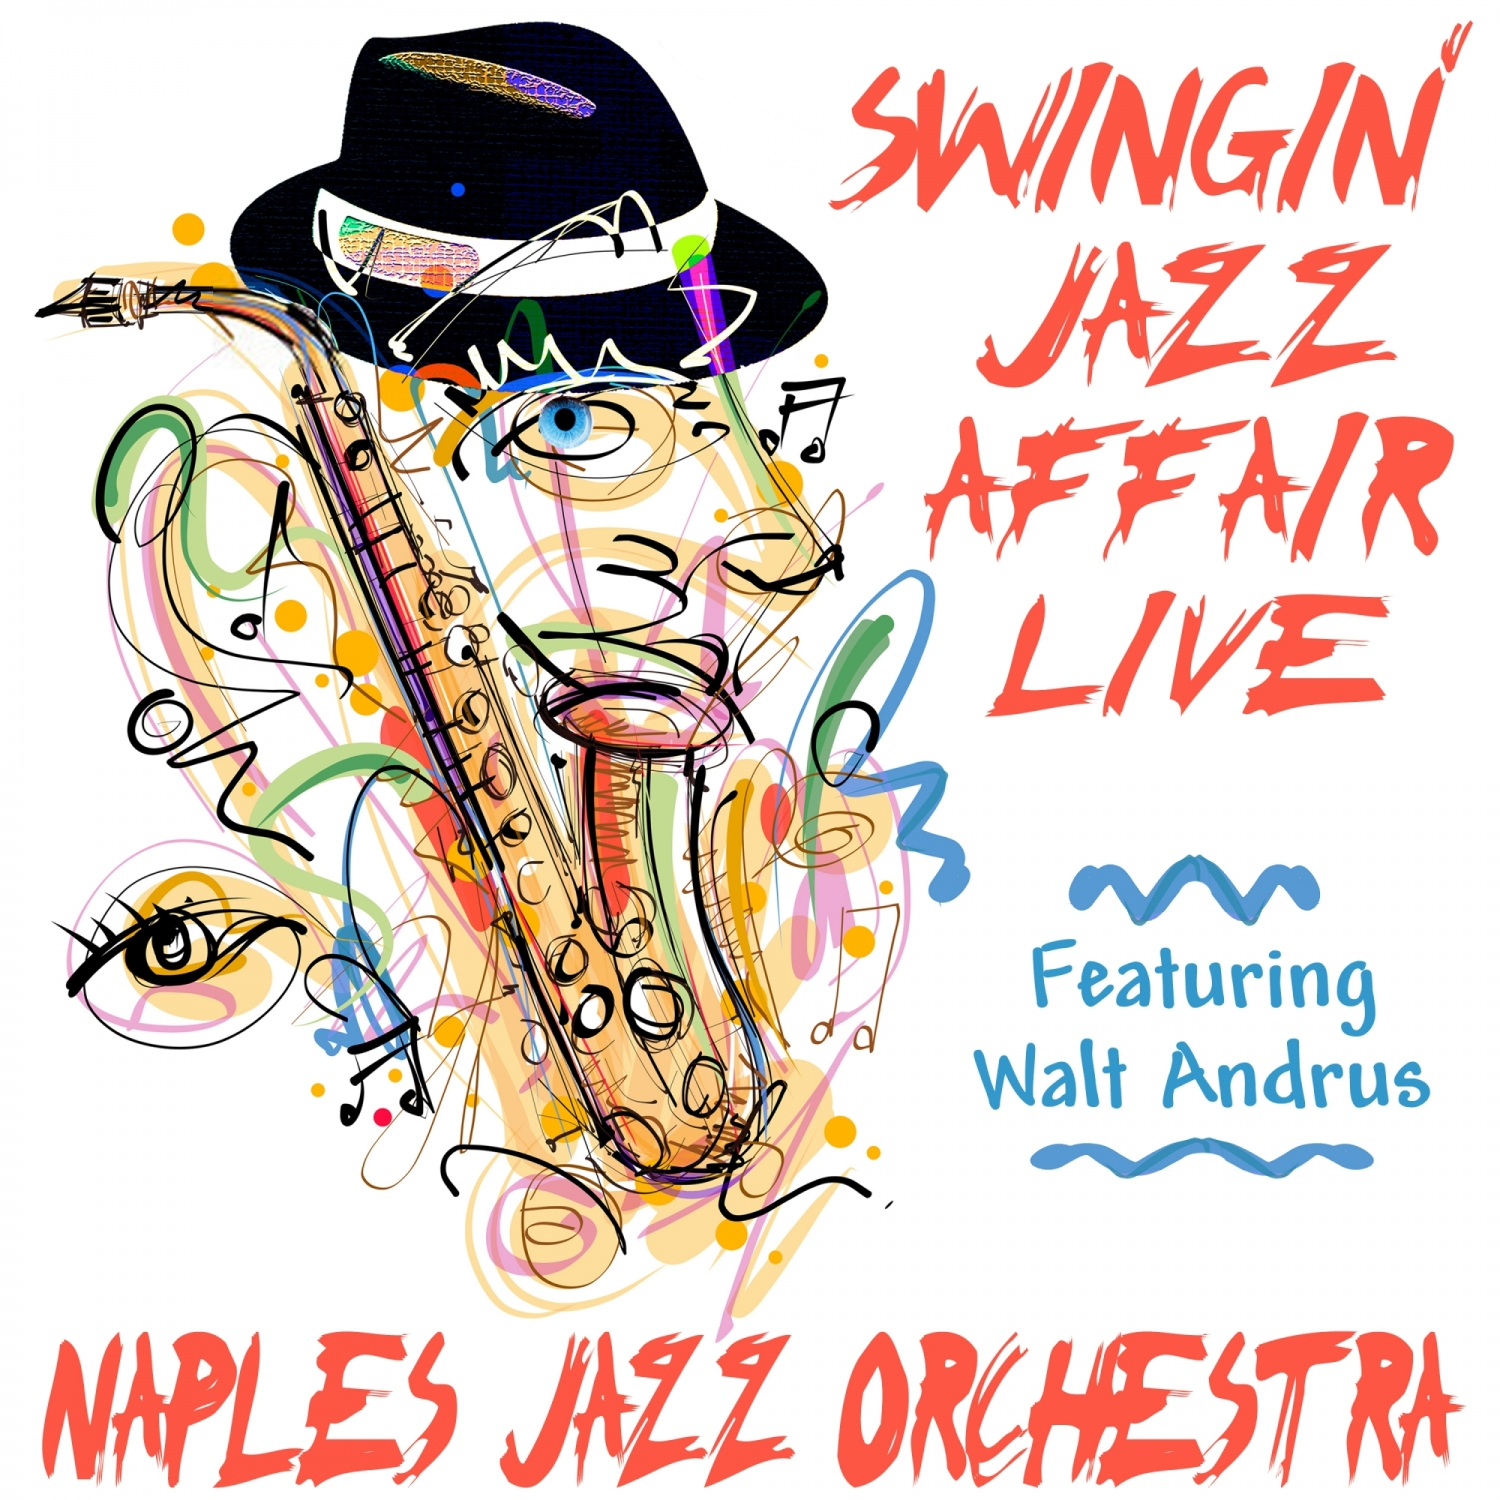 The Naples Jazz Orchestra  - Witchcraft  (feat. Walt Andrus)